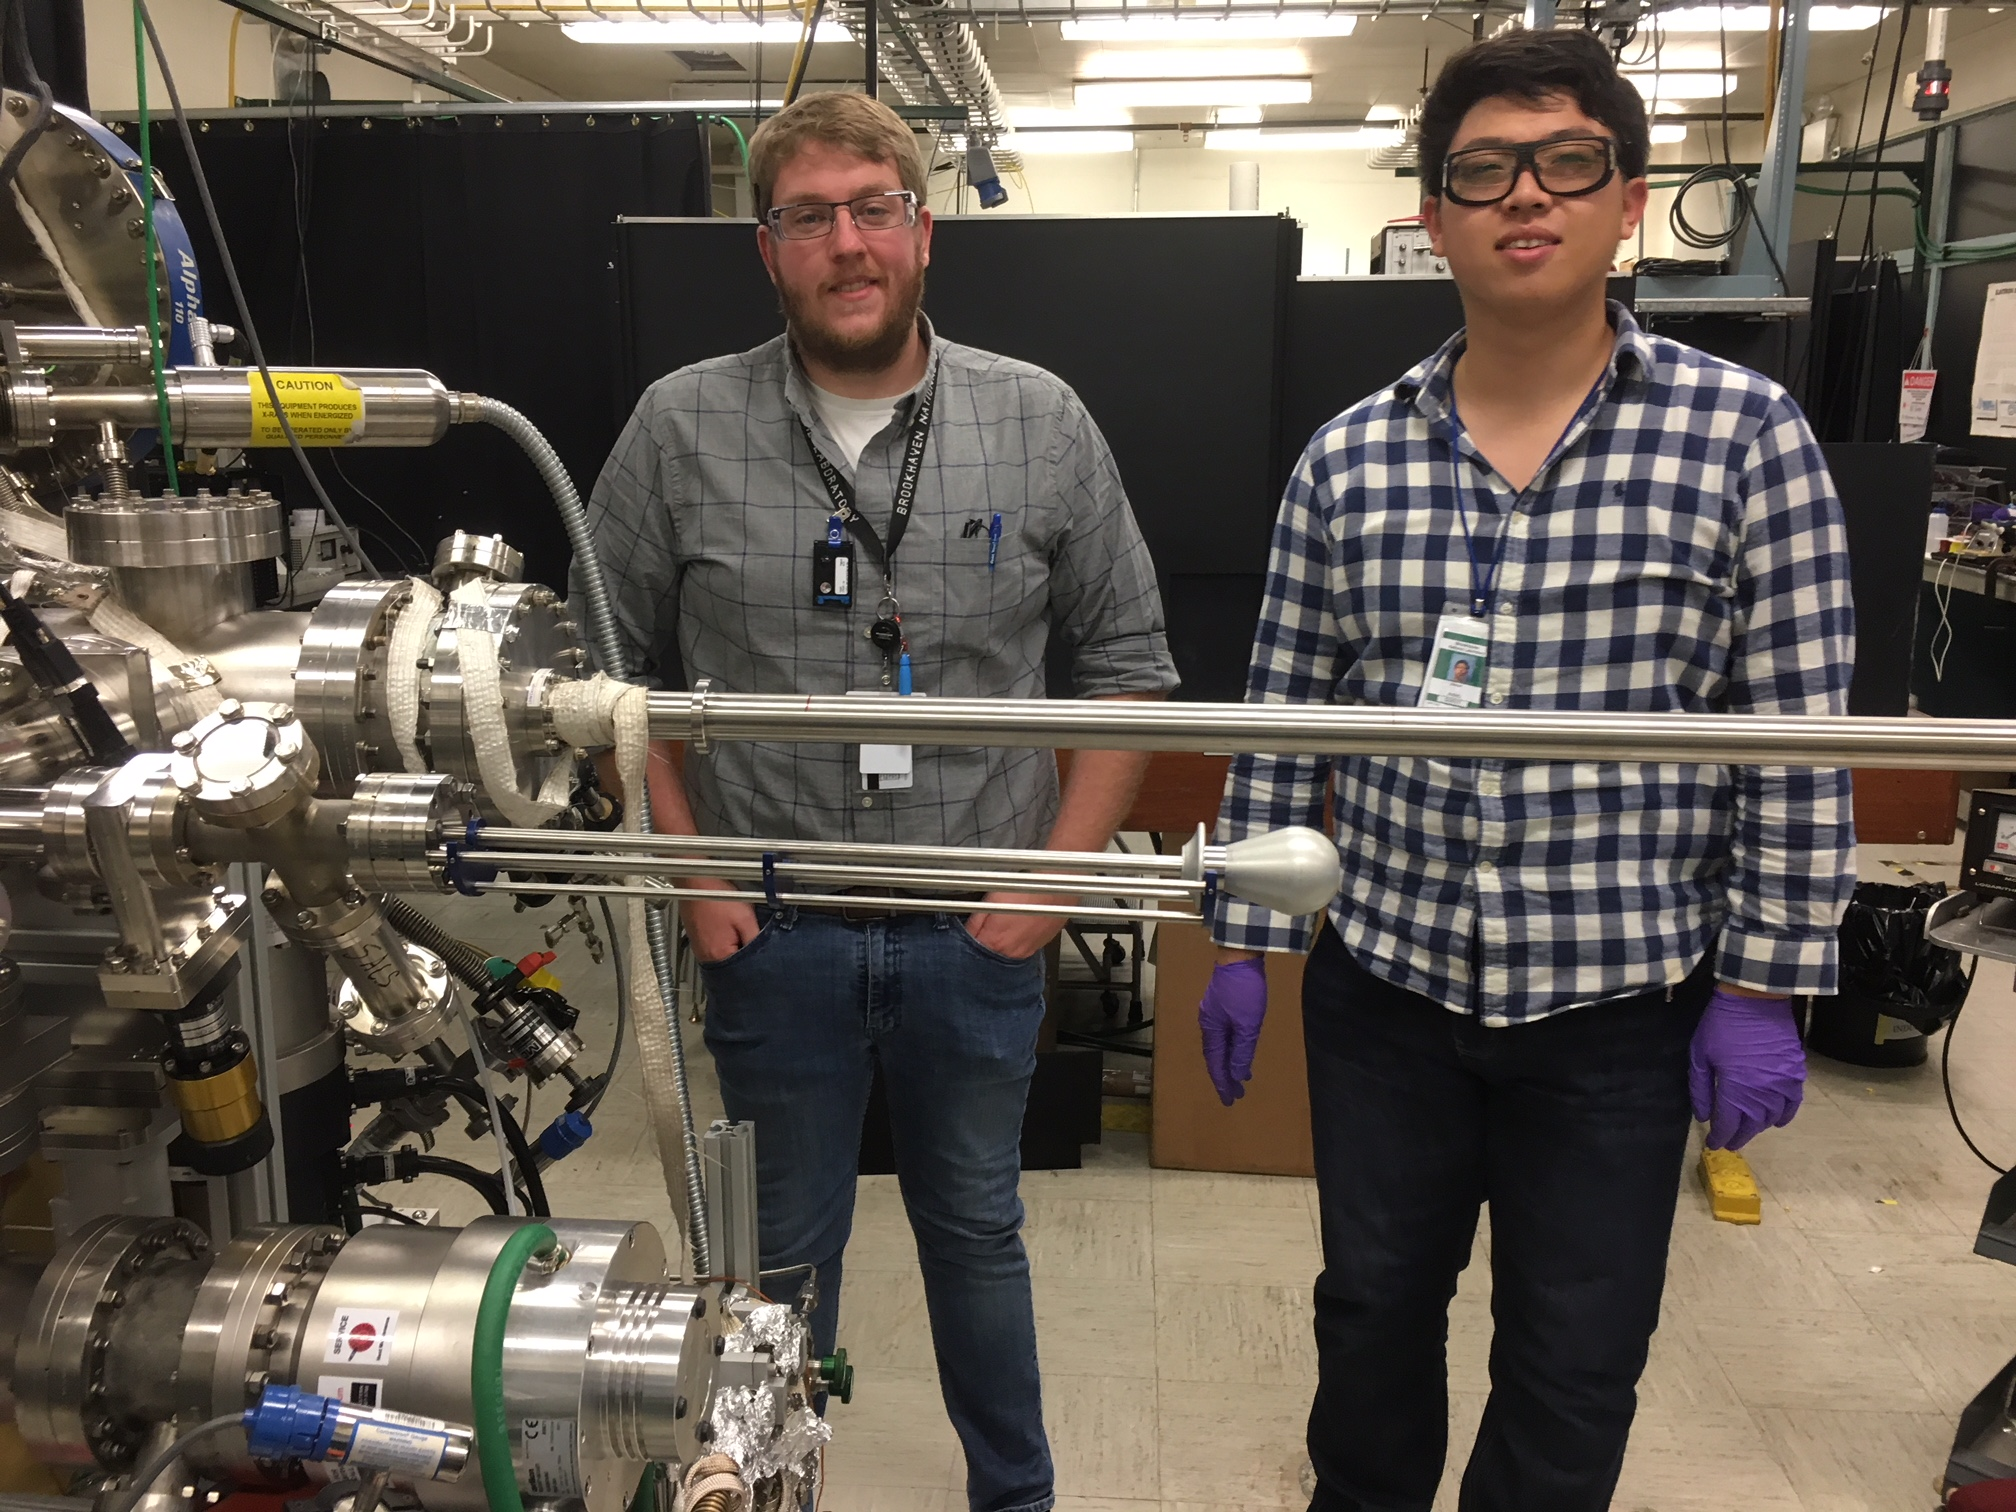 01/2018 - We welcome to our group Jason Wang (right) who will be working along with Ken (left) on Inverse Catalysts Prepared by Mass-Selected Clusters. We wish Jason the best on these upcoming years of exciting physical chemistry!